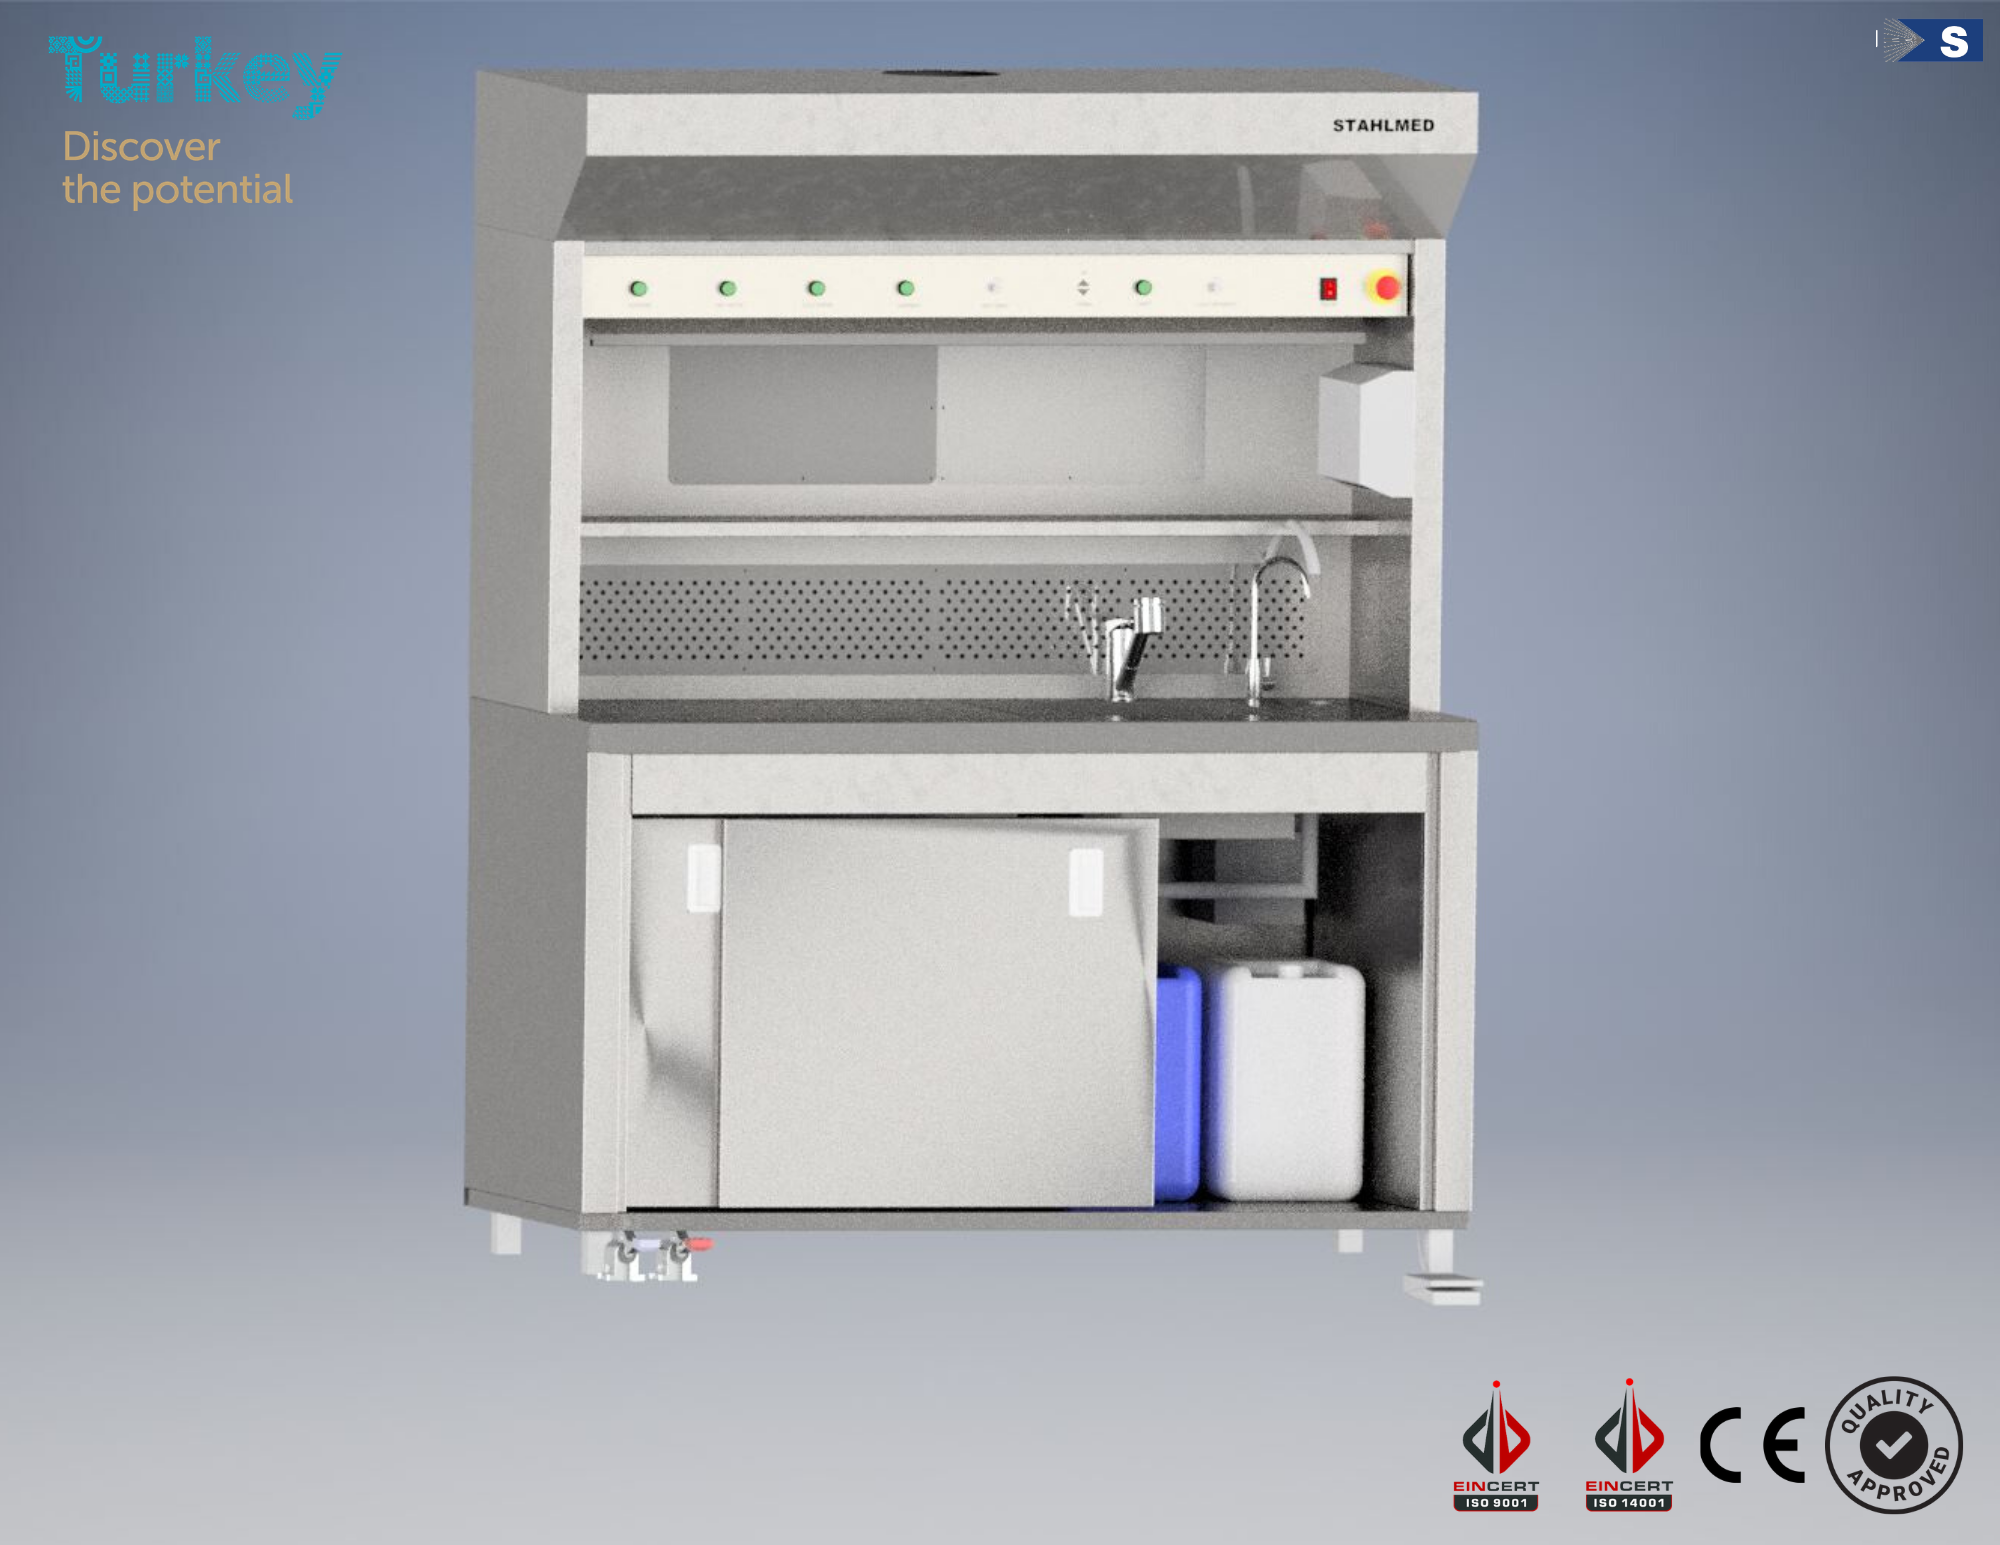 Stahlmed Laboratory Systems | Grossing Workstation